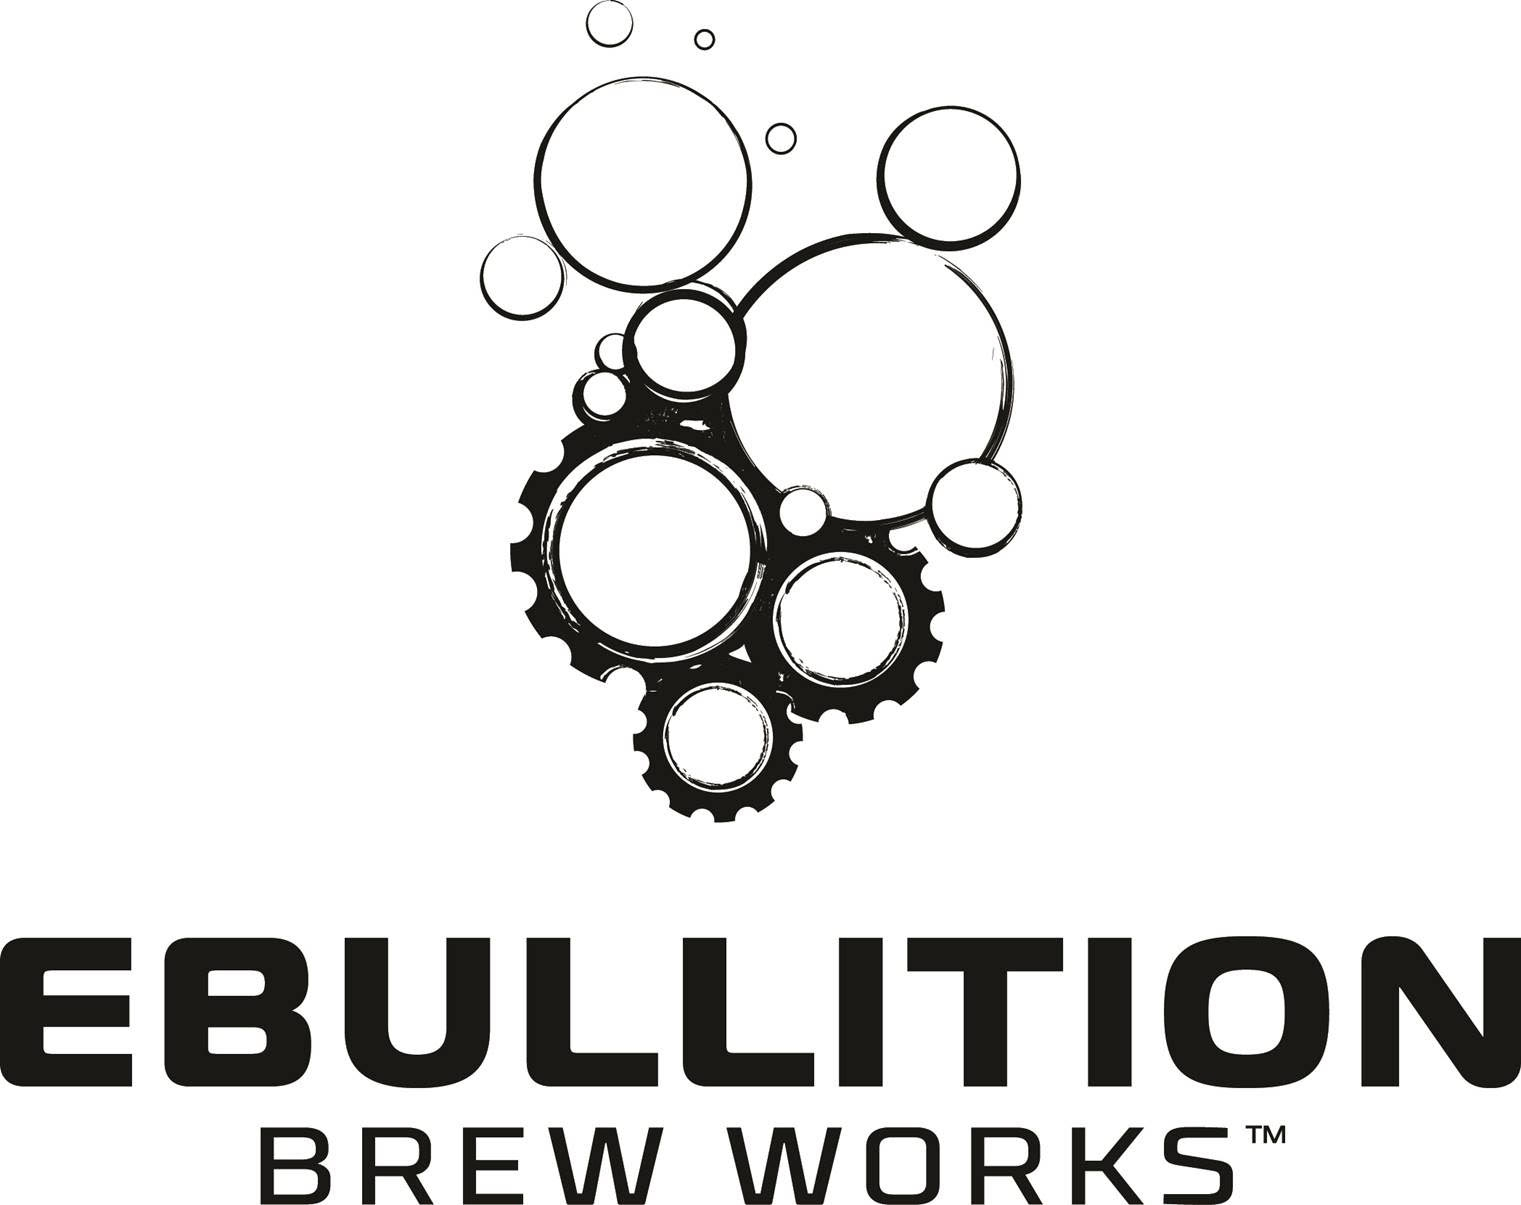 Ebullition Brewery 1.jpg